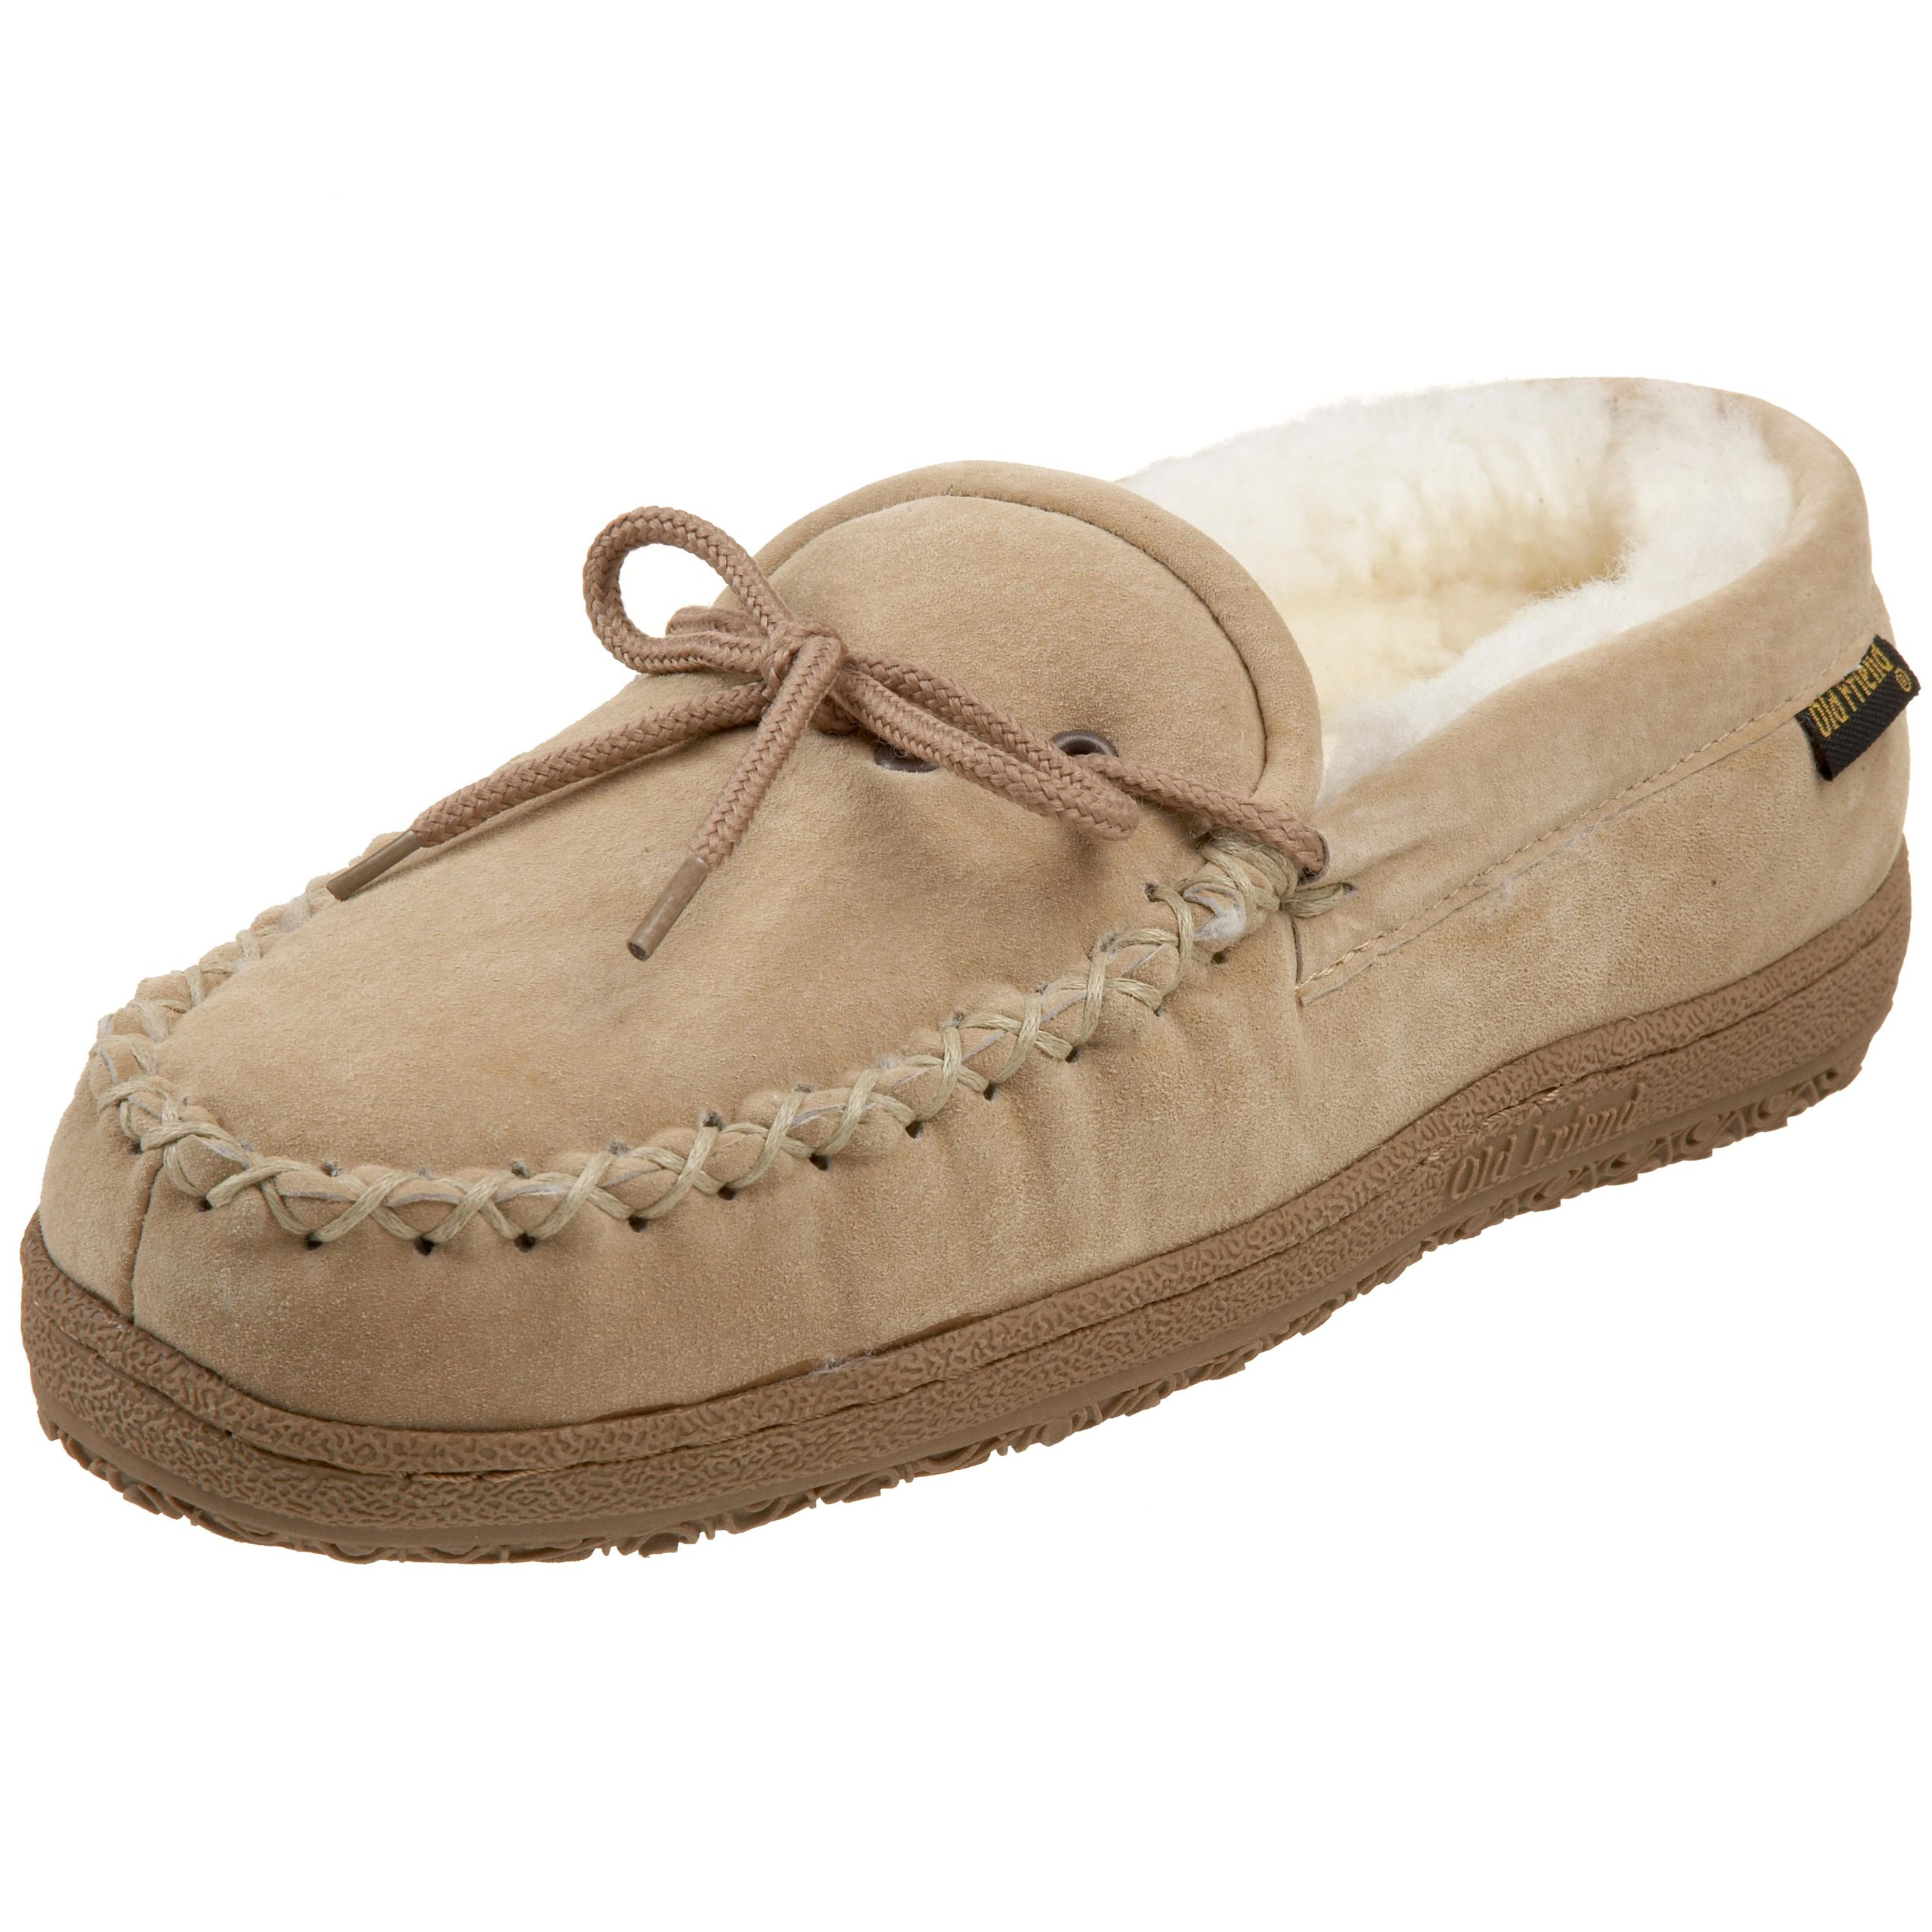 Old Friend Women's 441165 Loafer Moccasin,Chestnut/White,8 M US